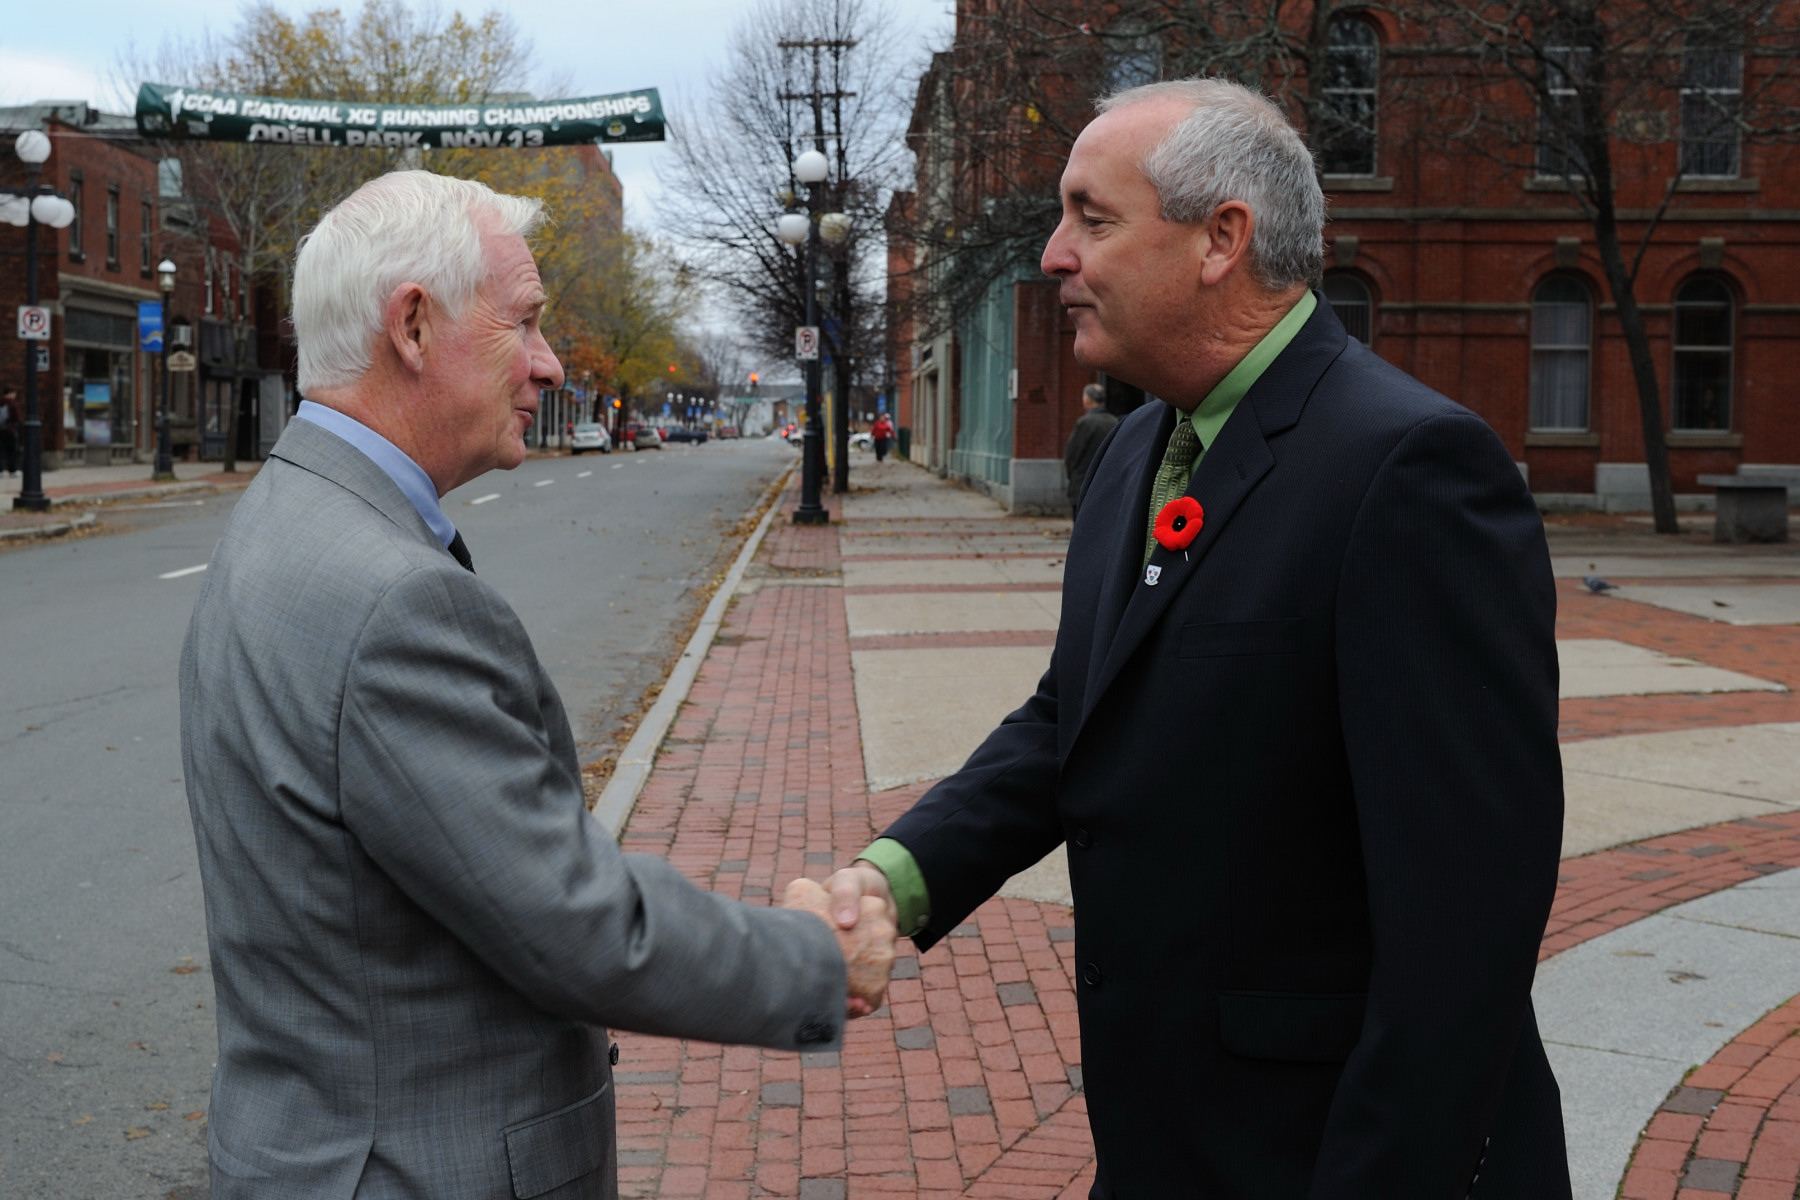 Upon his arrival at City Hall, His Excellency the Right Honourable David Johnston, Governor General of Canada, was greeted by Mr. Dan R. Keenan, Deputy Mayor of Fredericton.